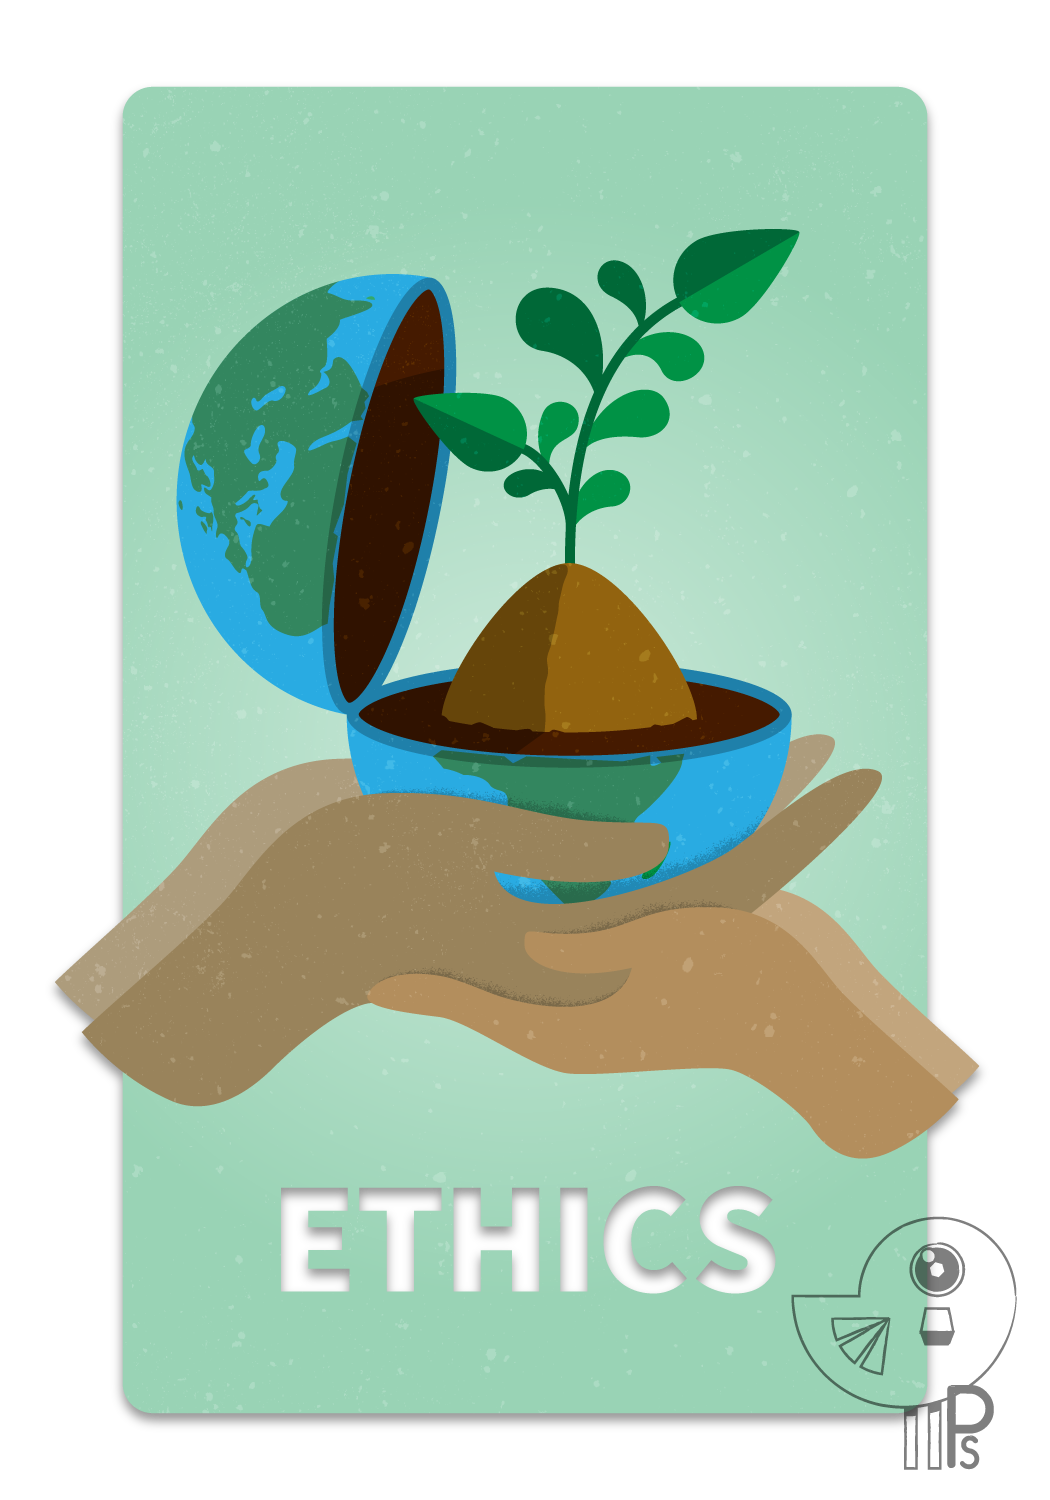 permaculture Ethics people care Fair share earth card design